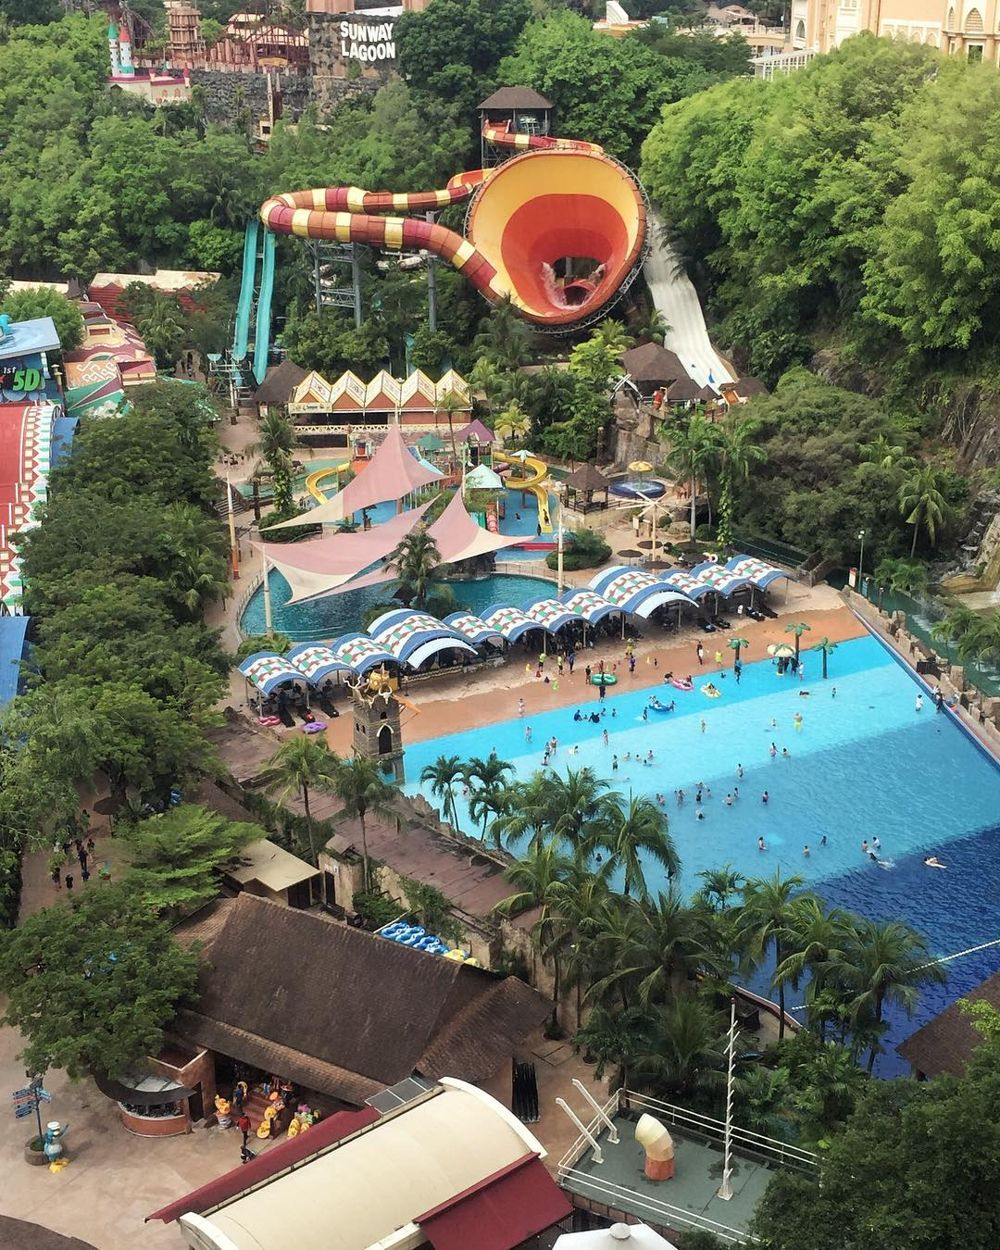 Aerial view of Sunway Lagoon water park